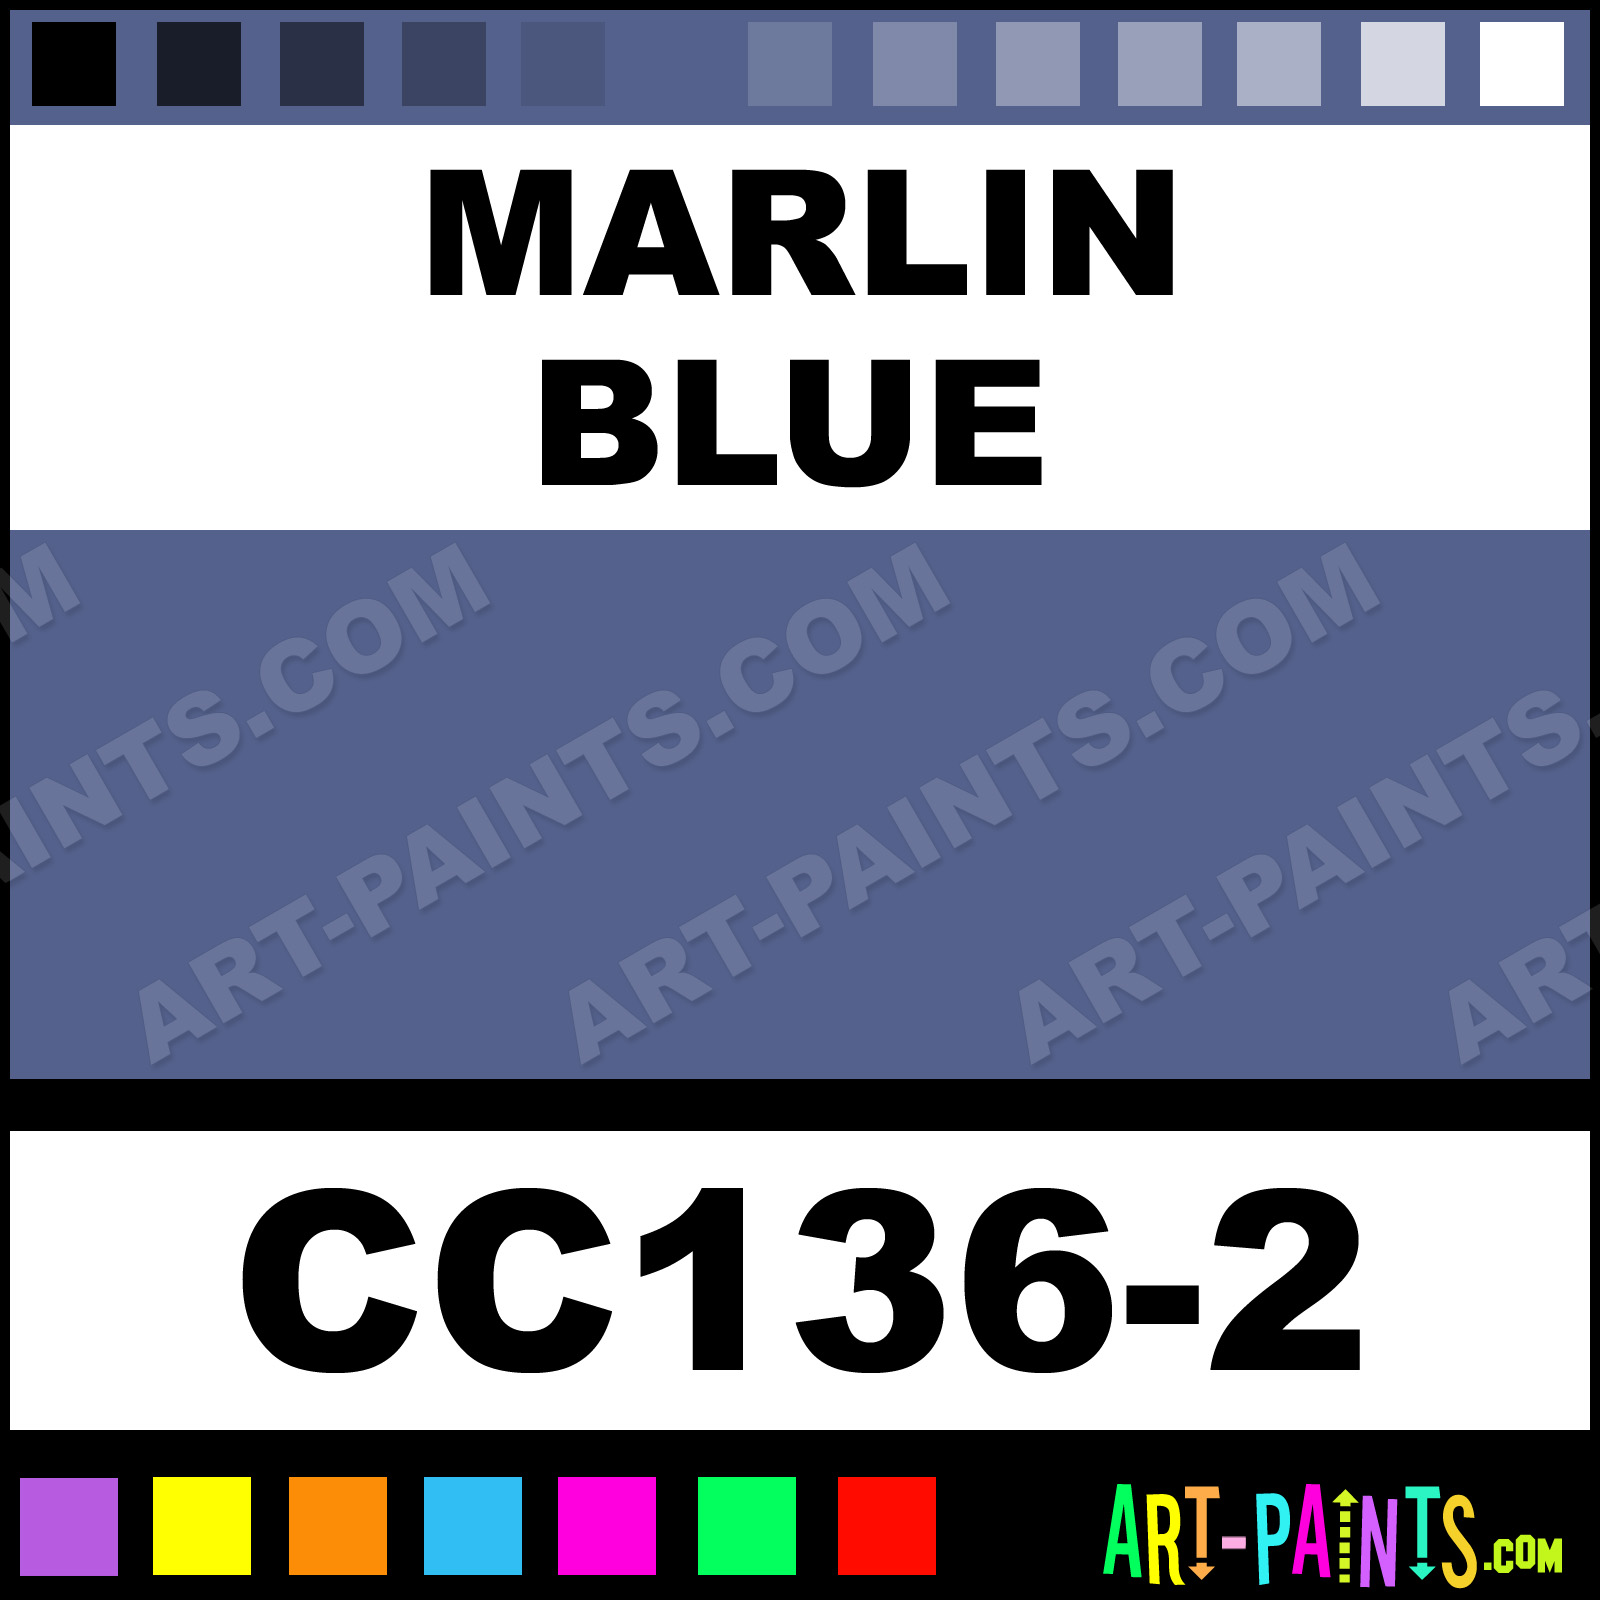 Marlin Blue Painting - Charleston, SC - Painter in Charleston